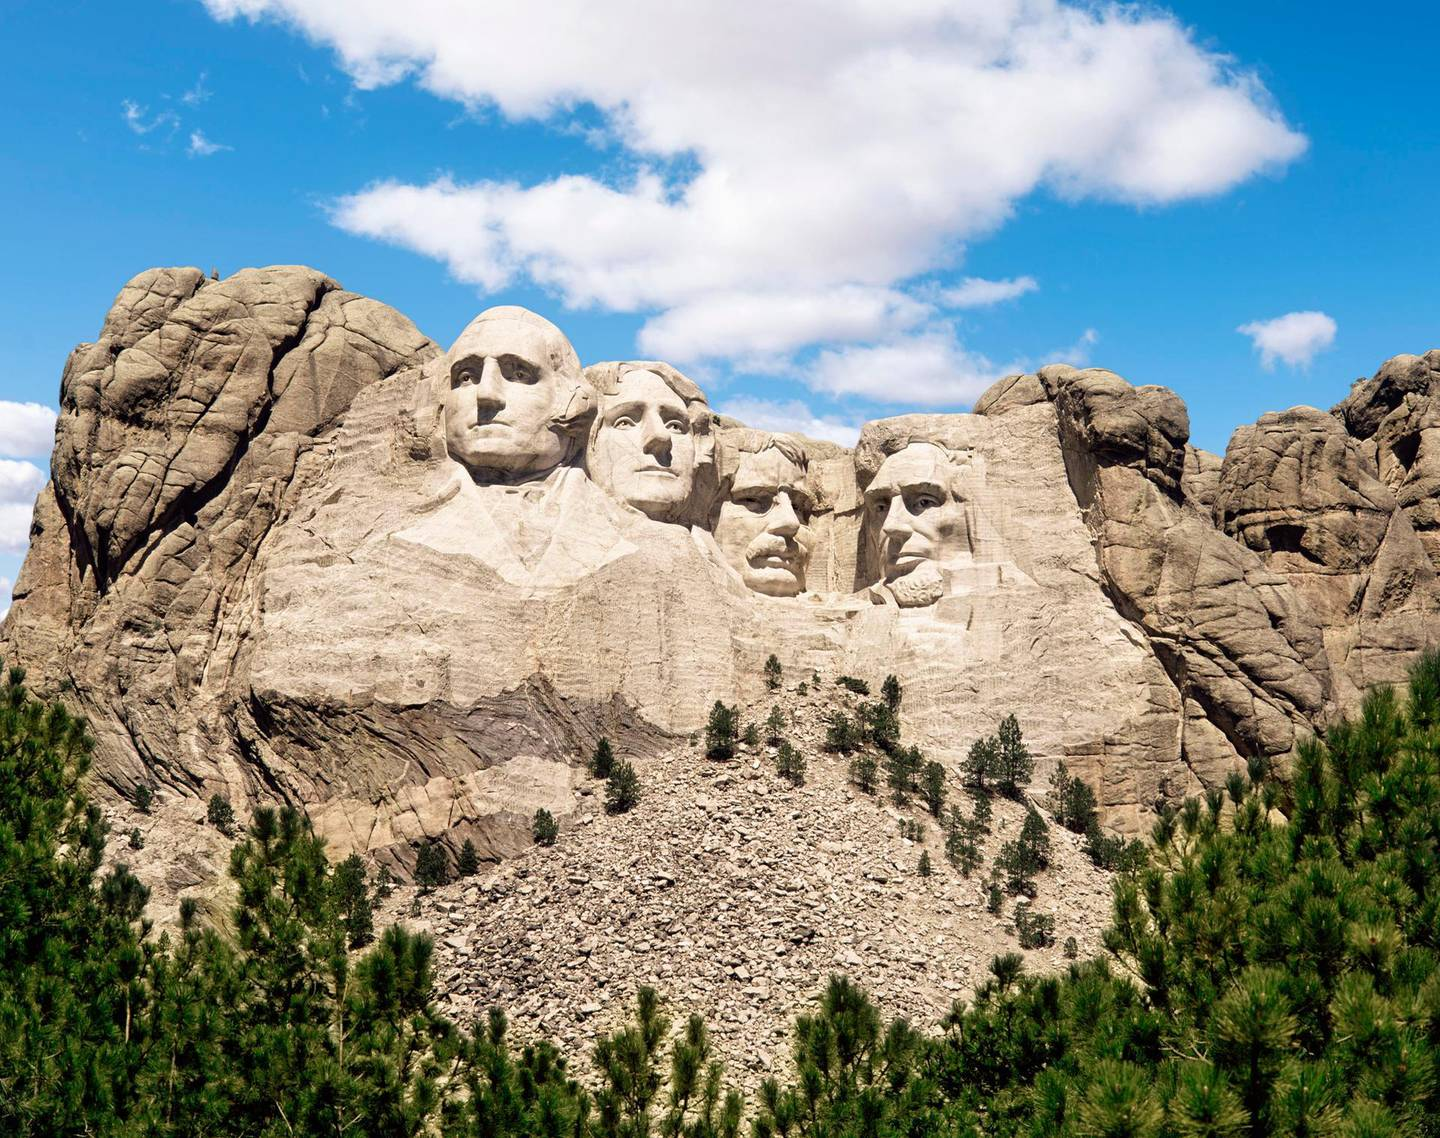 """""""Mount Rushmore monument under blue sky, South Dakota, United States"""". Getty Images"""